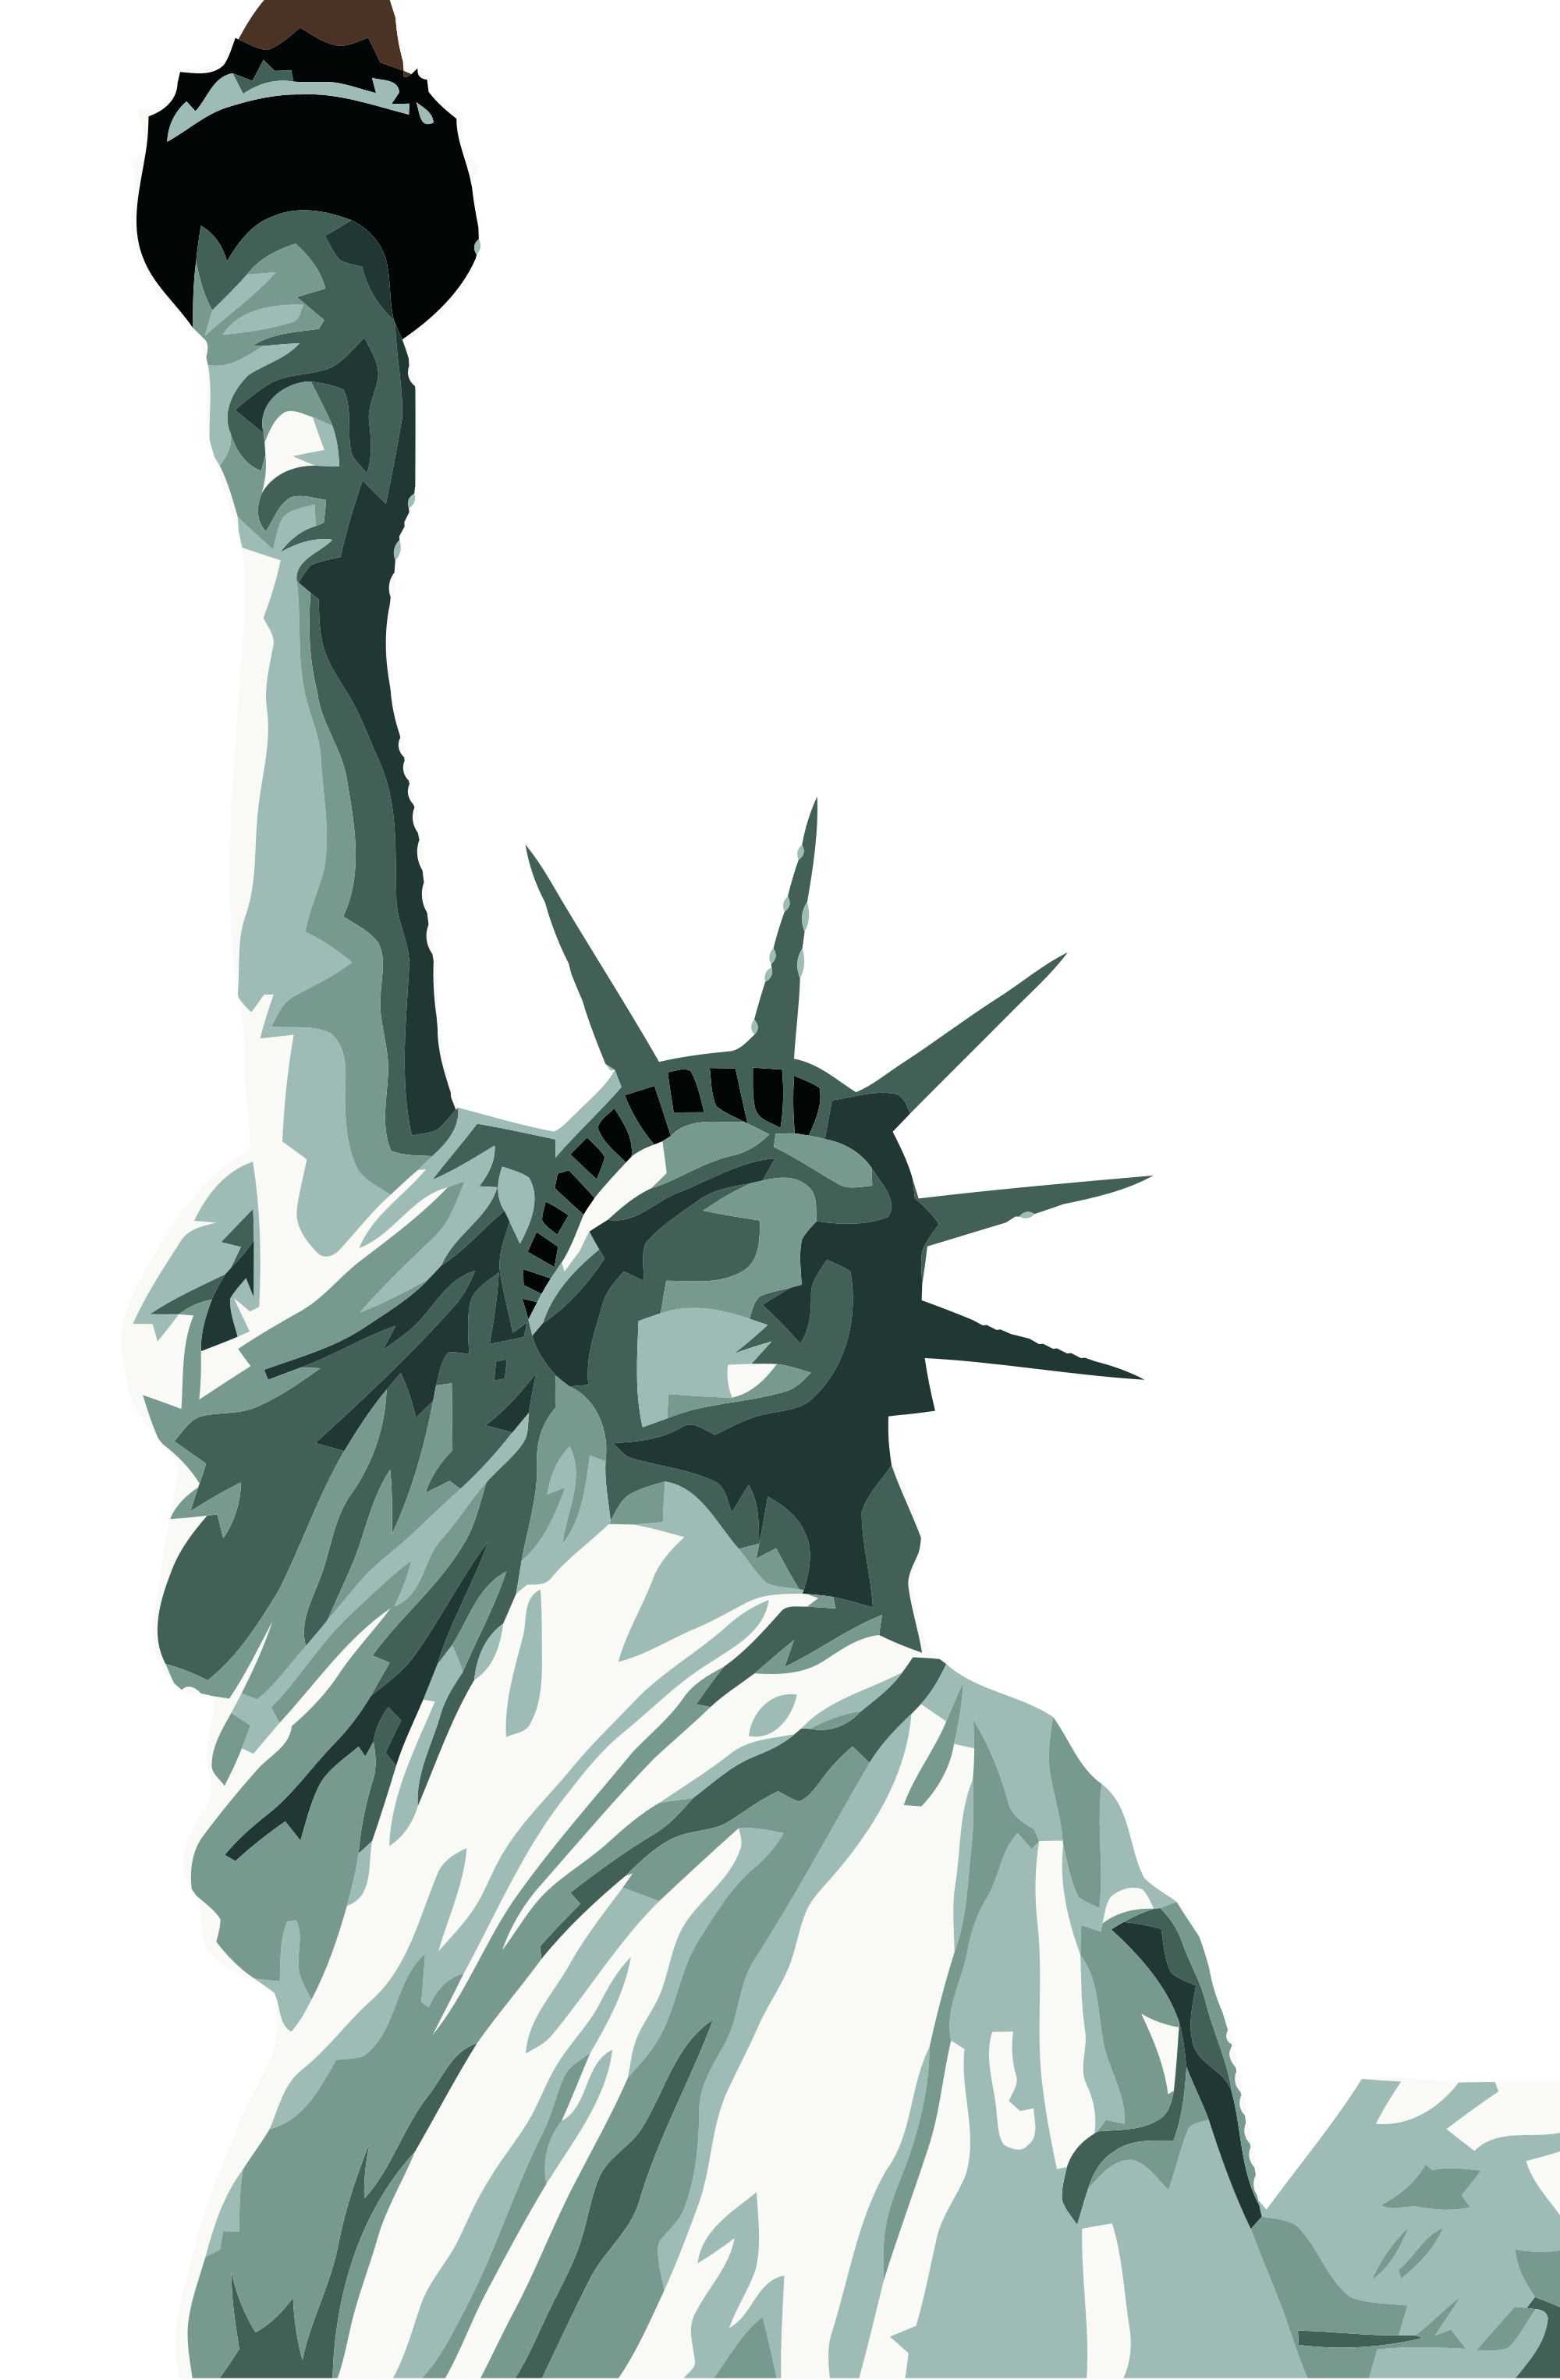 Liberty statue clipart png. Of transparent images open